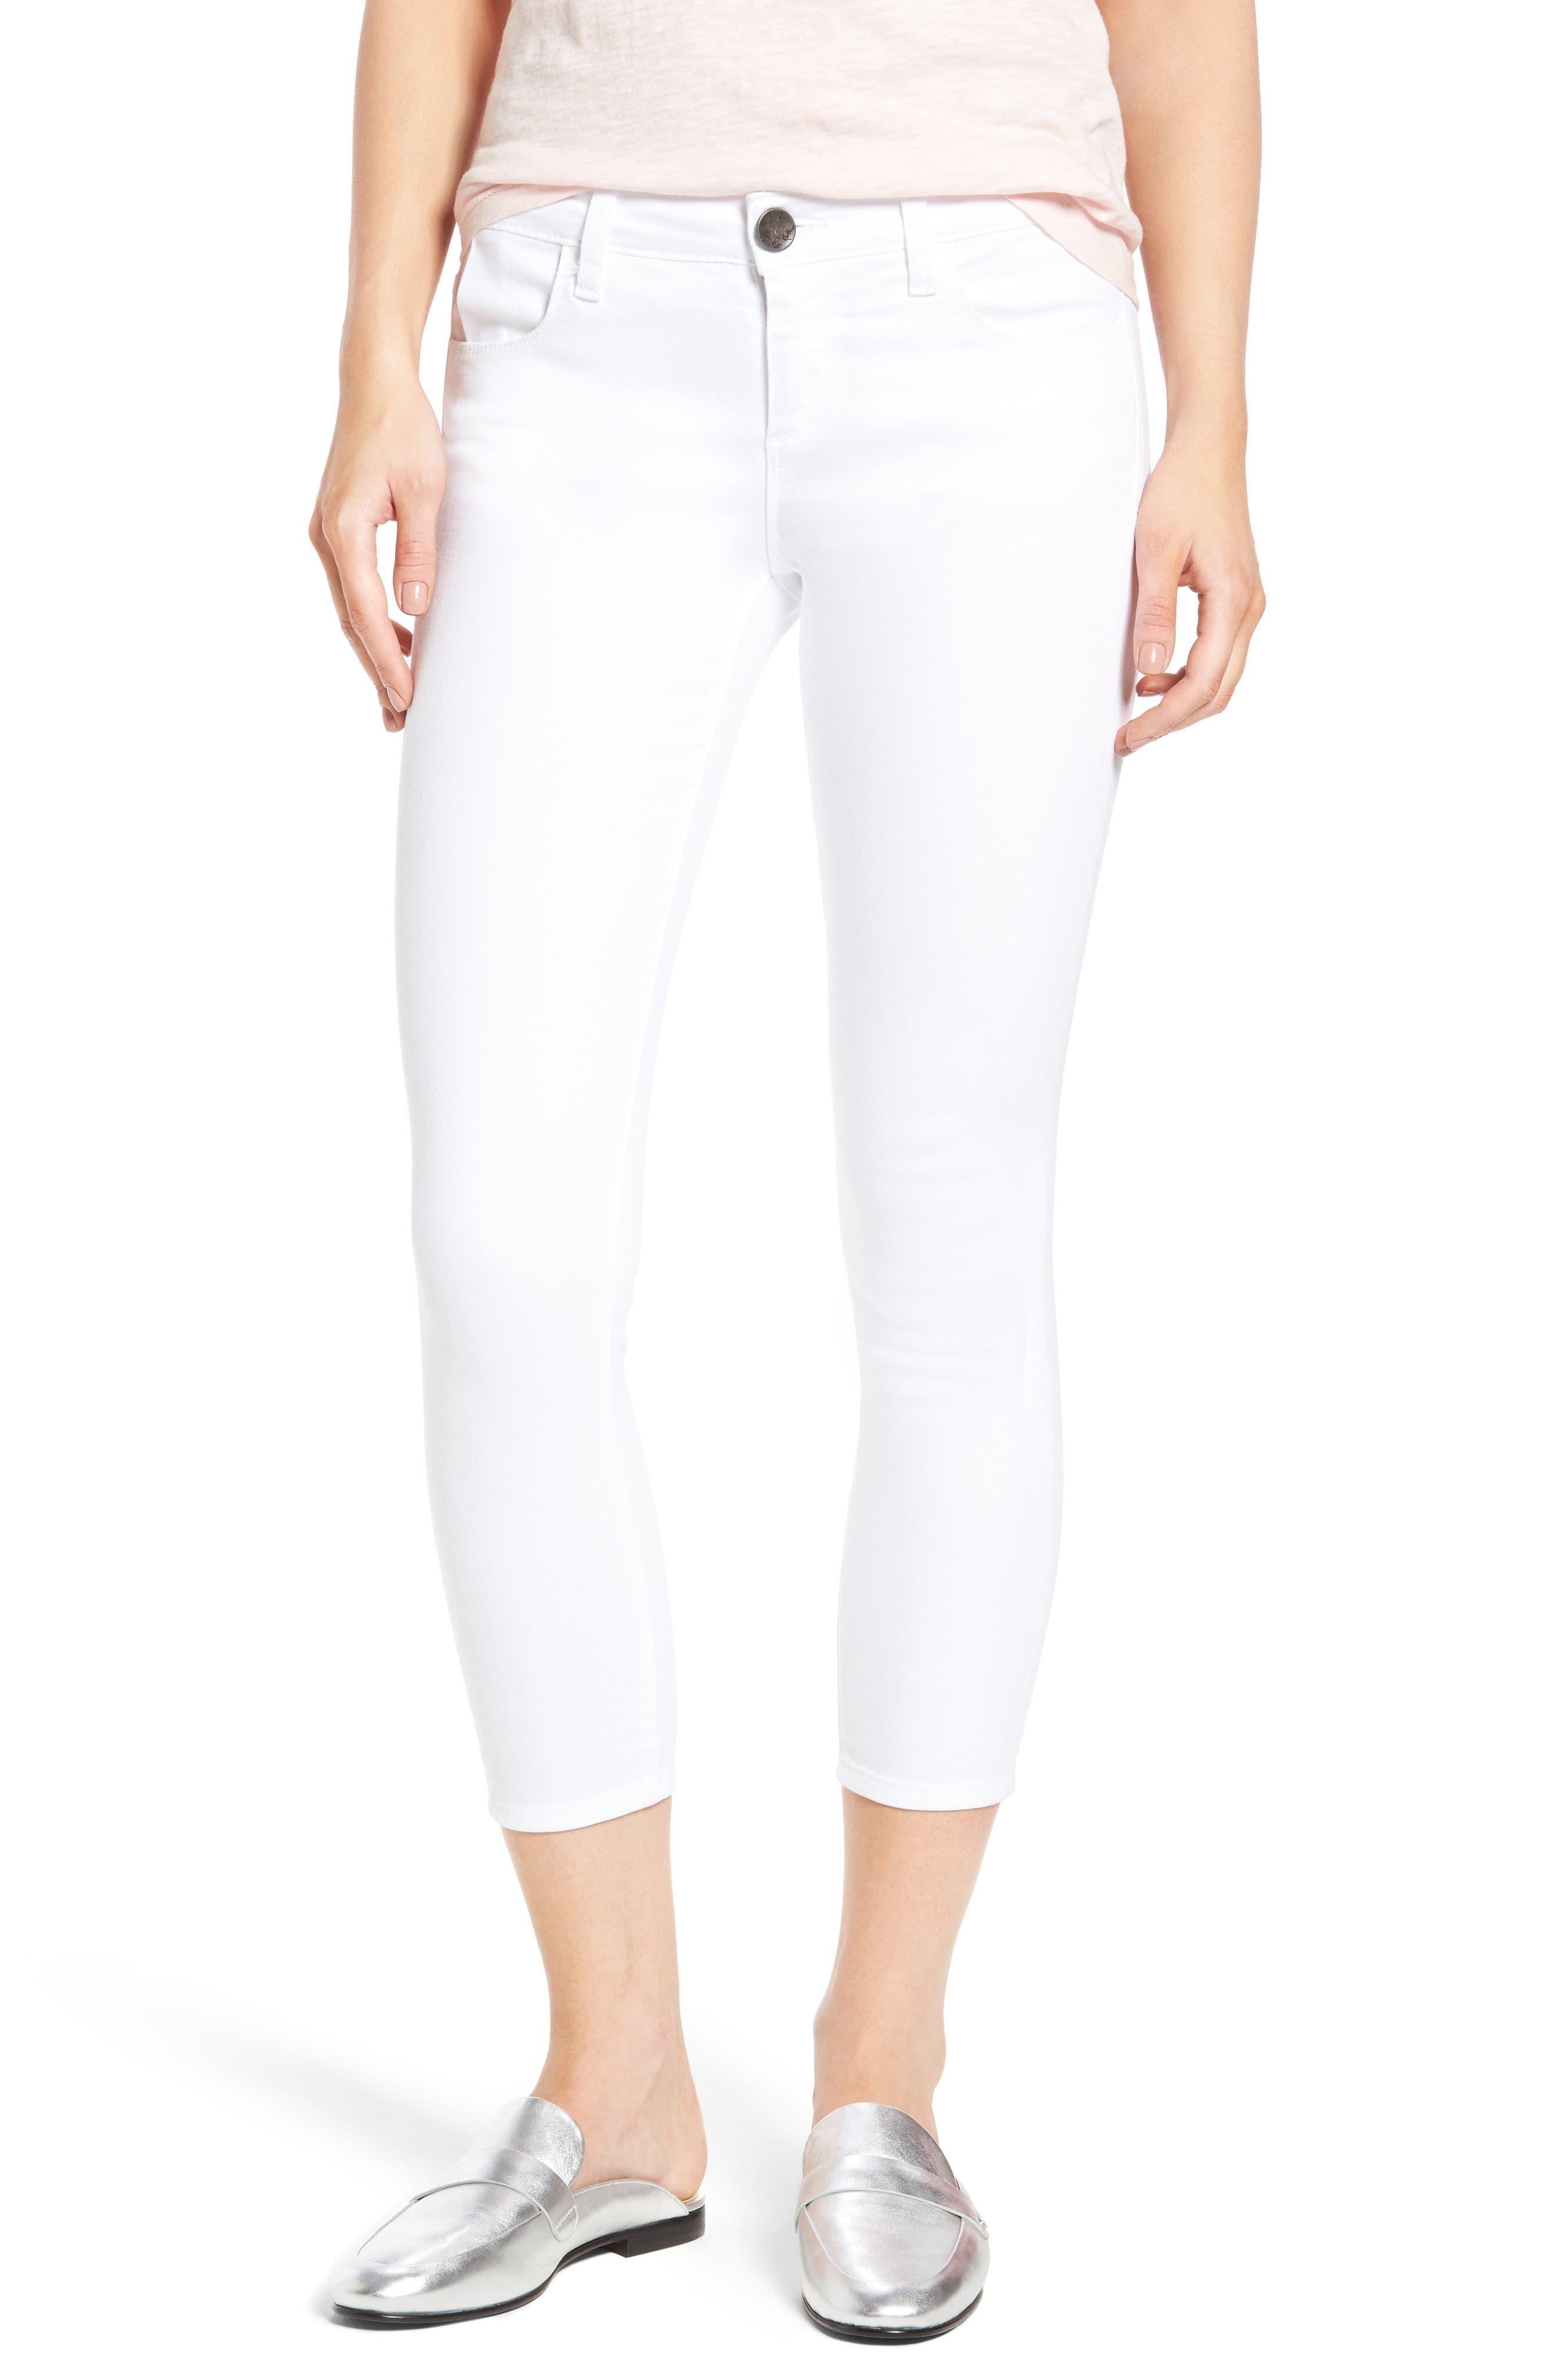 KUT from the Kloth Crop Skinny Jeans (Optic White) (Regular & Petite)